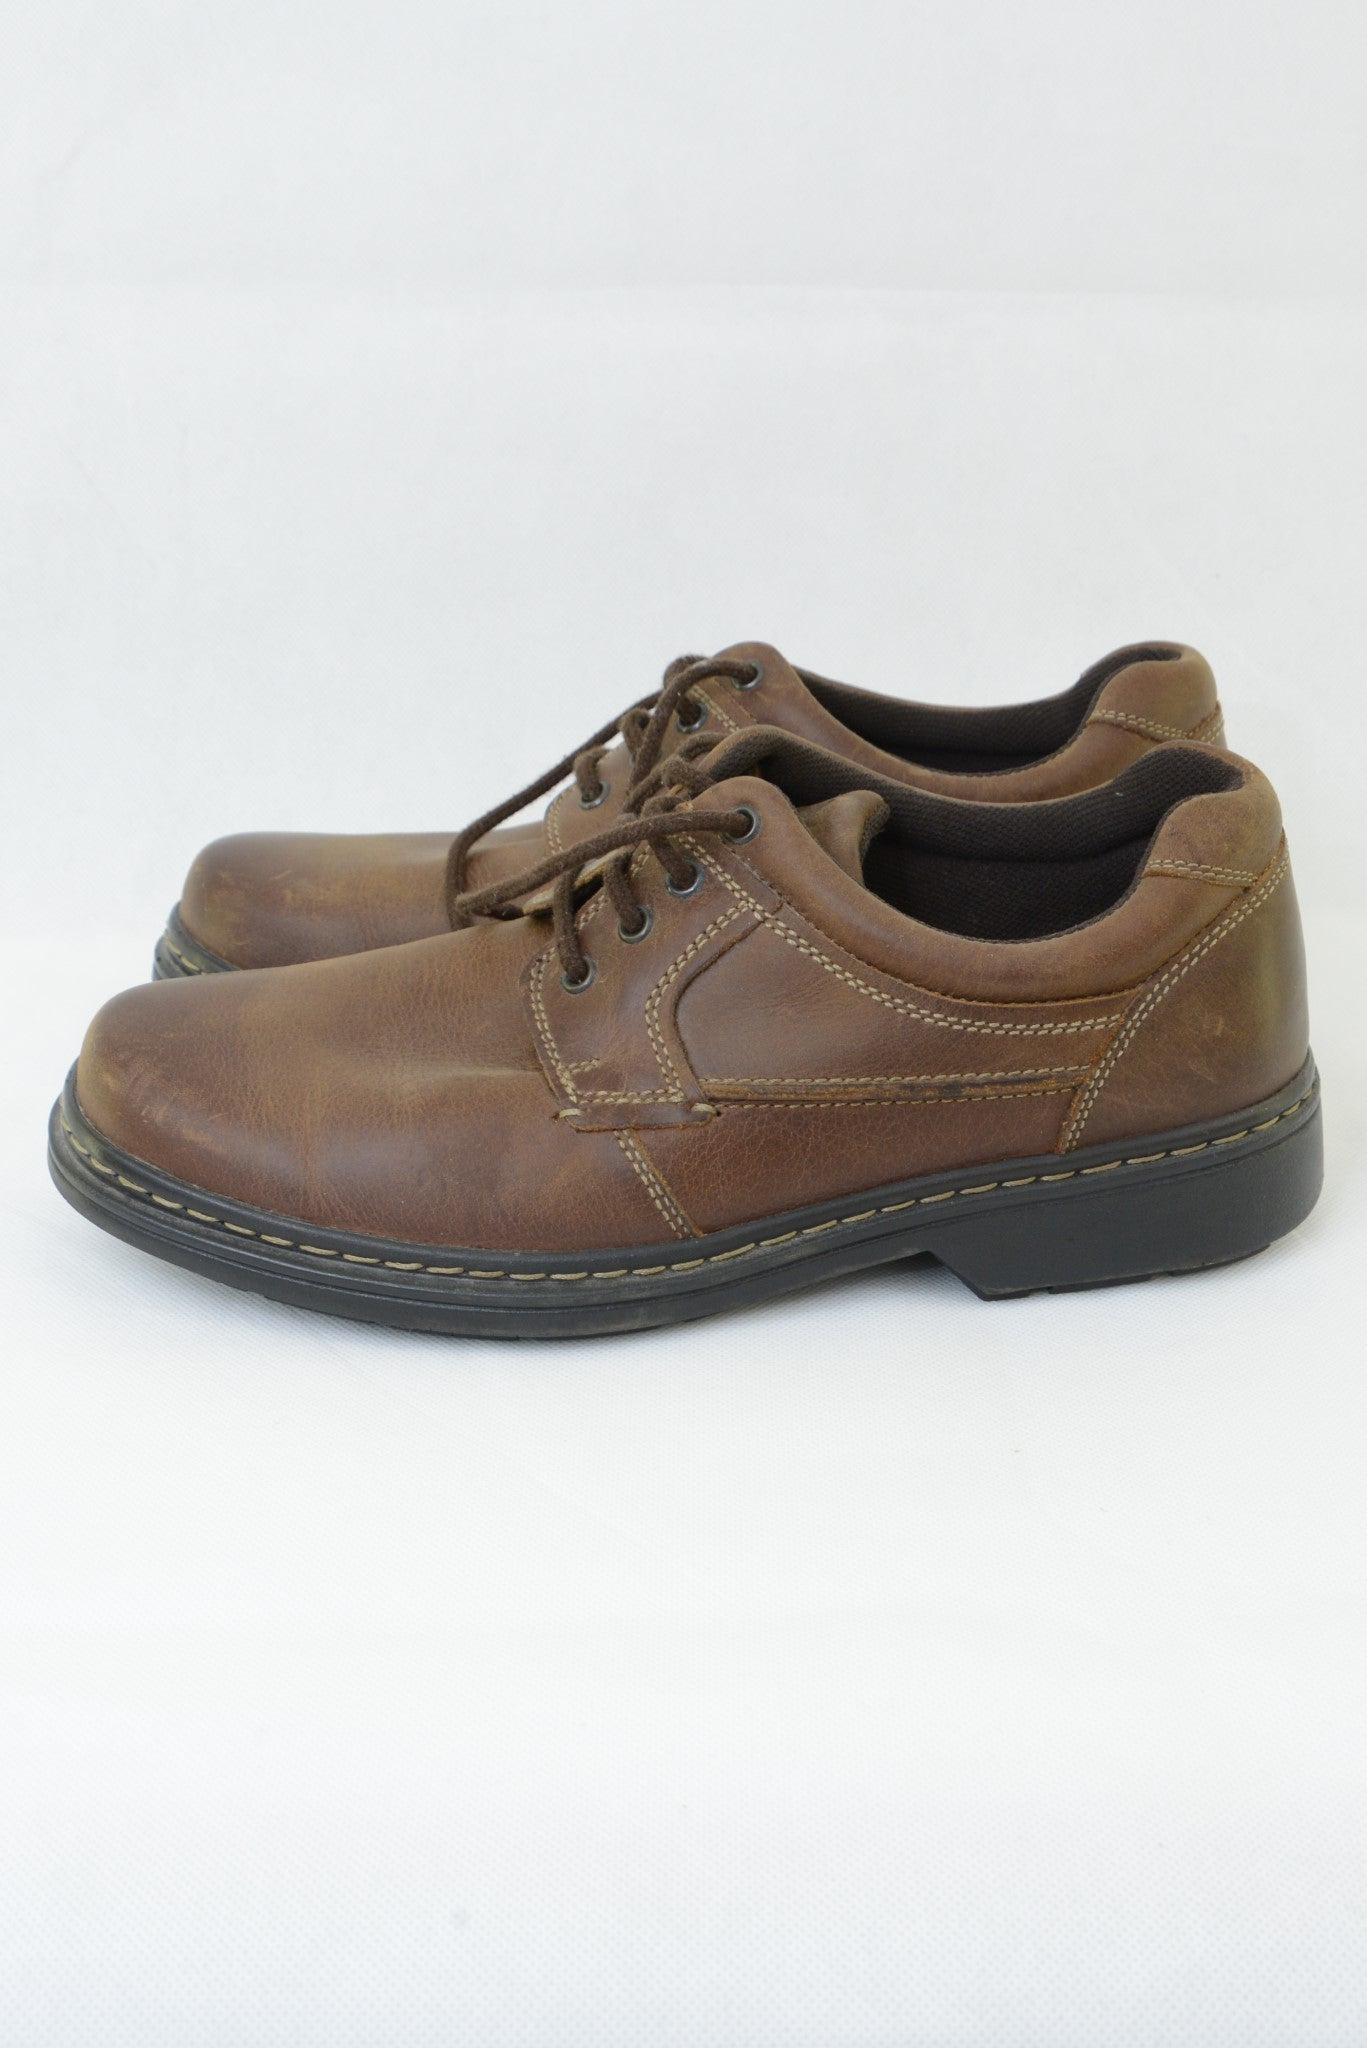 Preloved Airflex men's leather lace-up shoes, brown, side view.